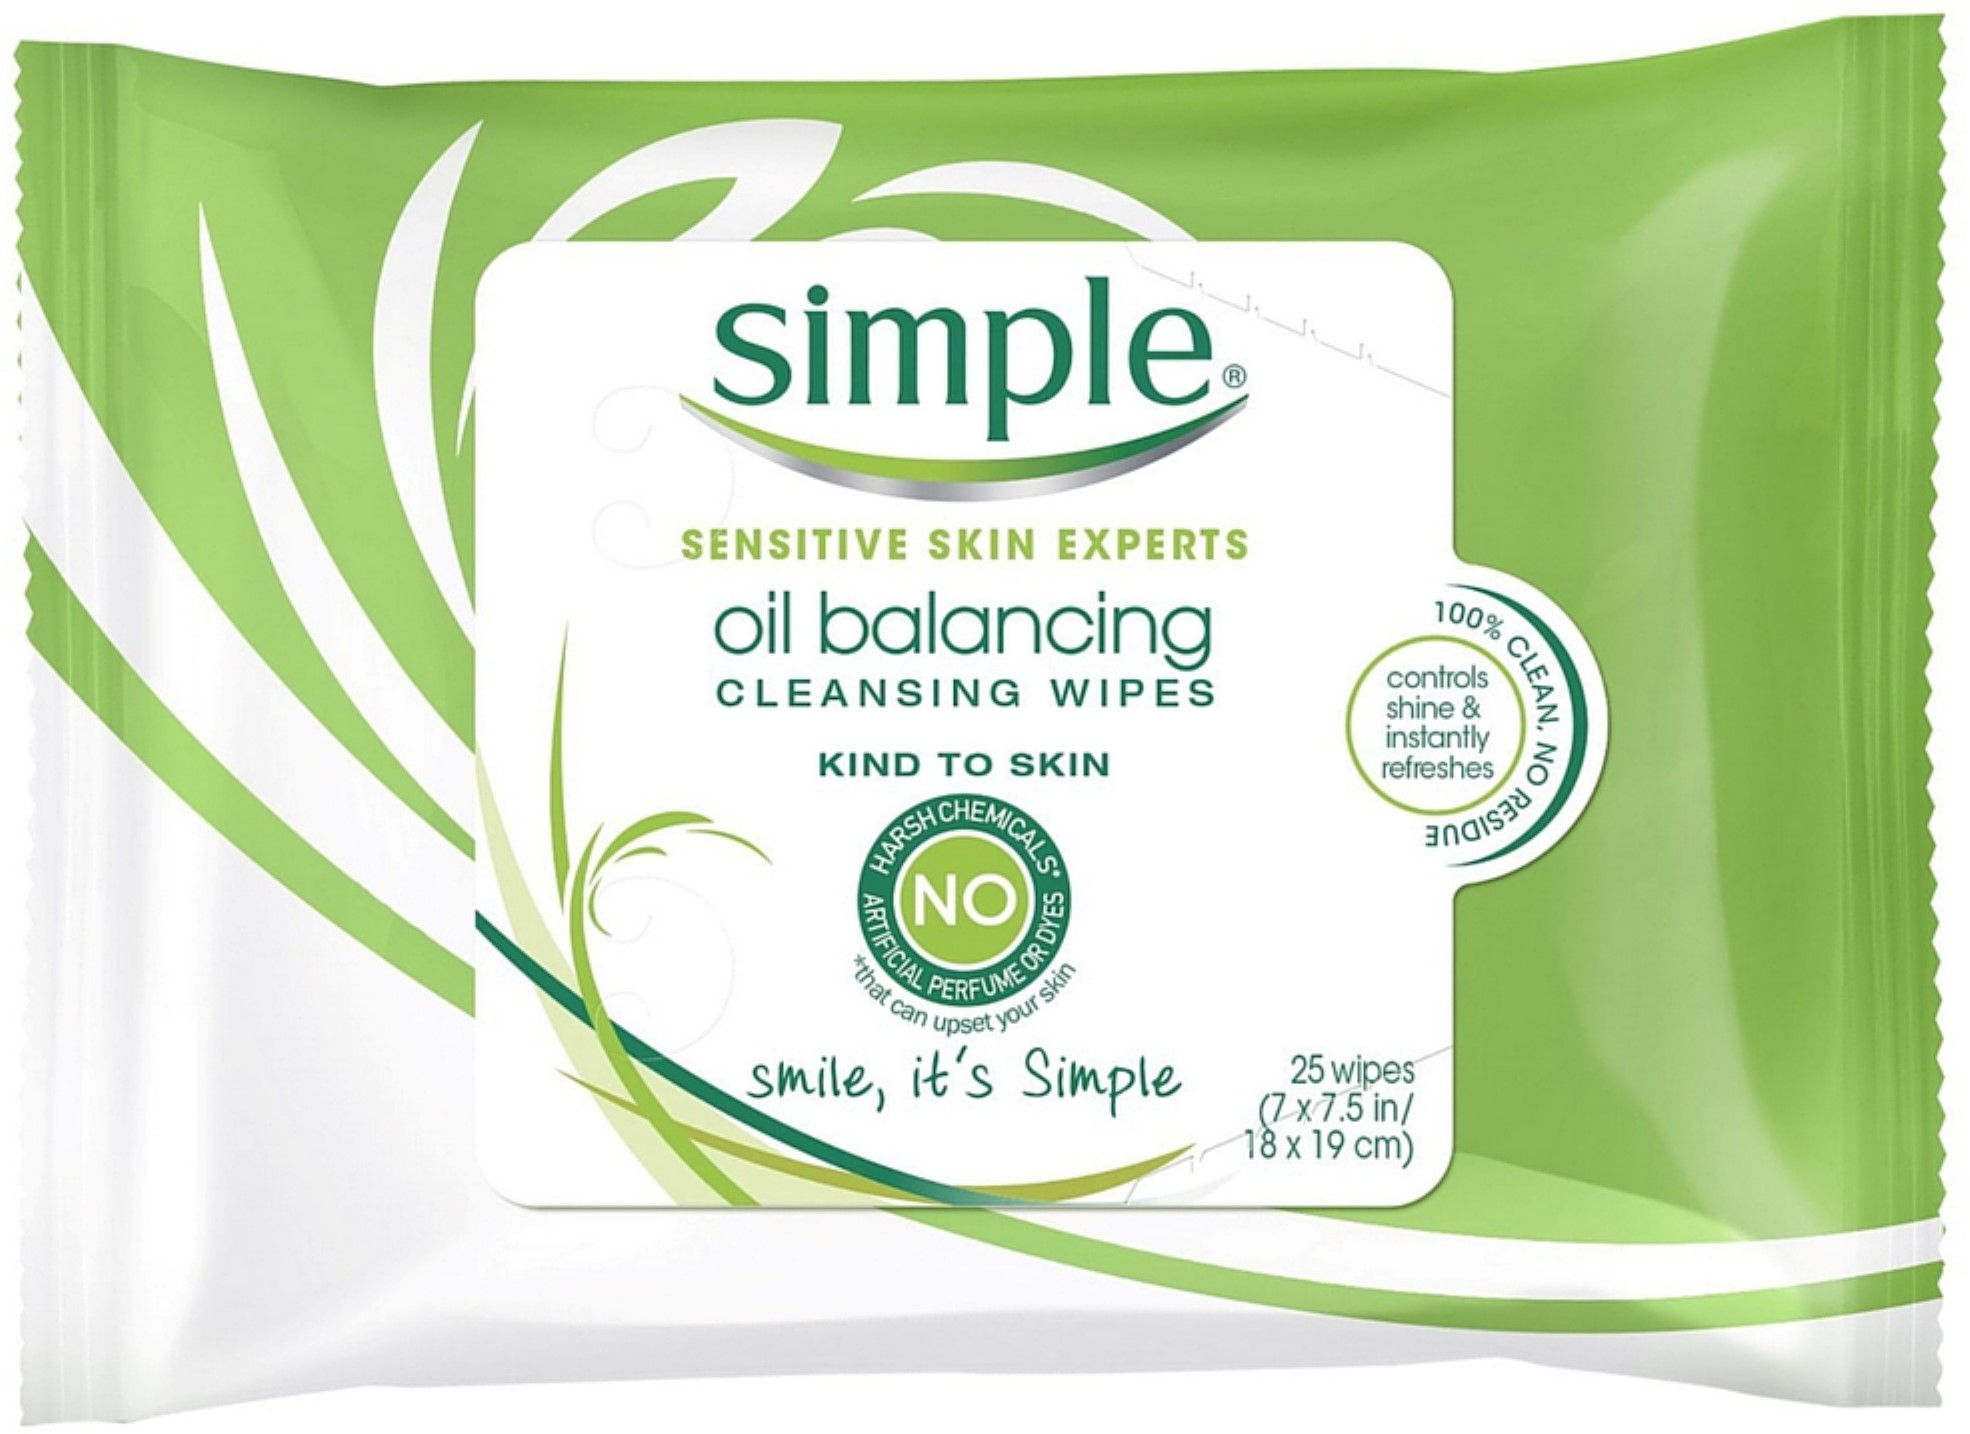 4 Pack - Simple Sensitive Skin Experts Oil Balancing Cleansing Wipes 25 ea N.M.F Aquaring Mask, This Beauty Product Is 100% Original By Mediheal